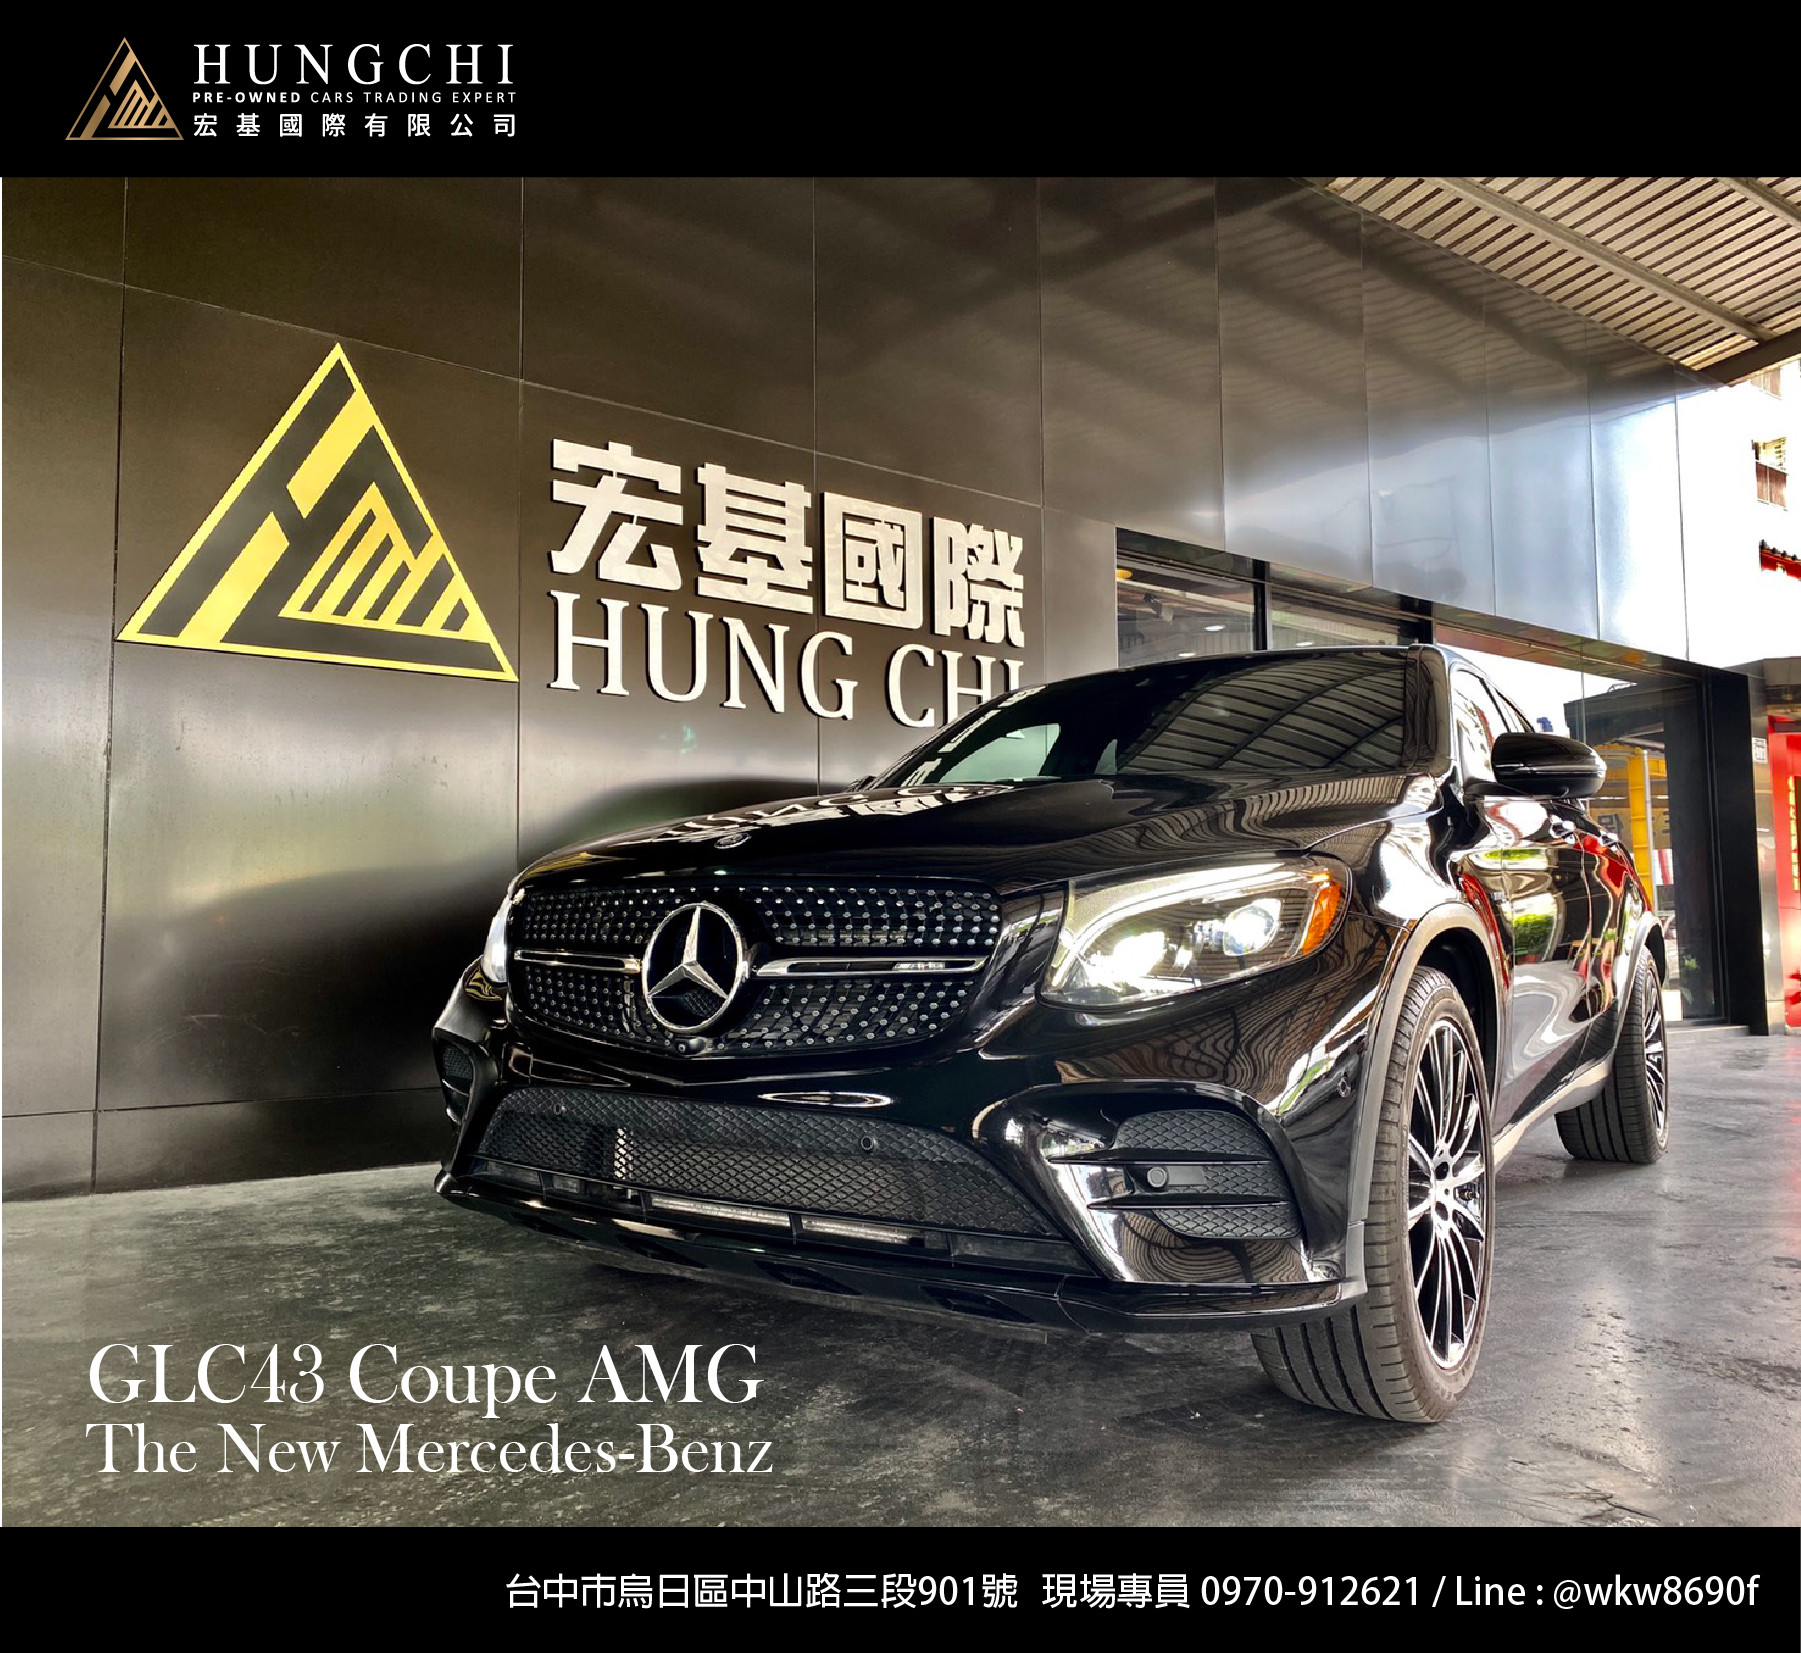 2017 GLC43 AMG COUPE 4MATIC